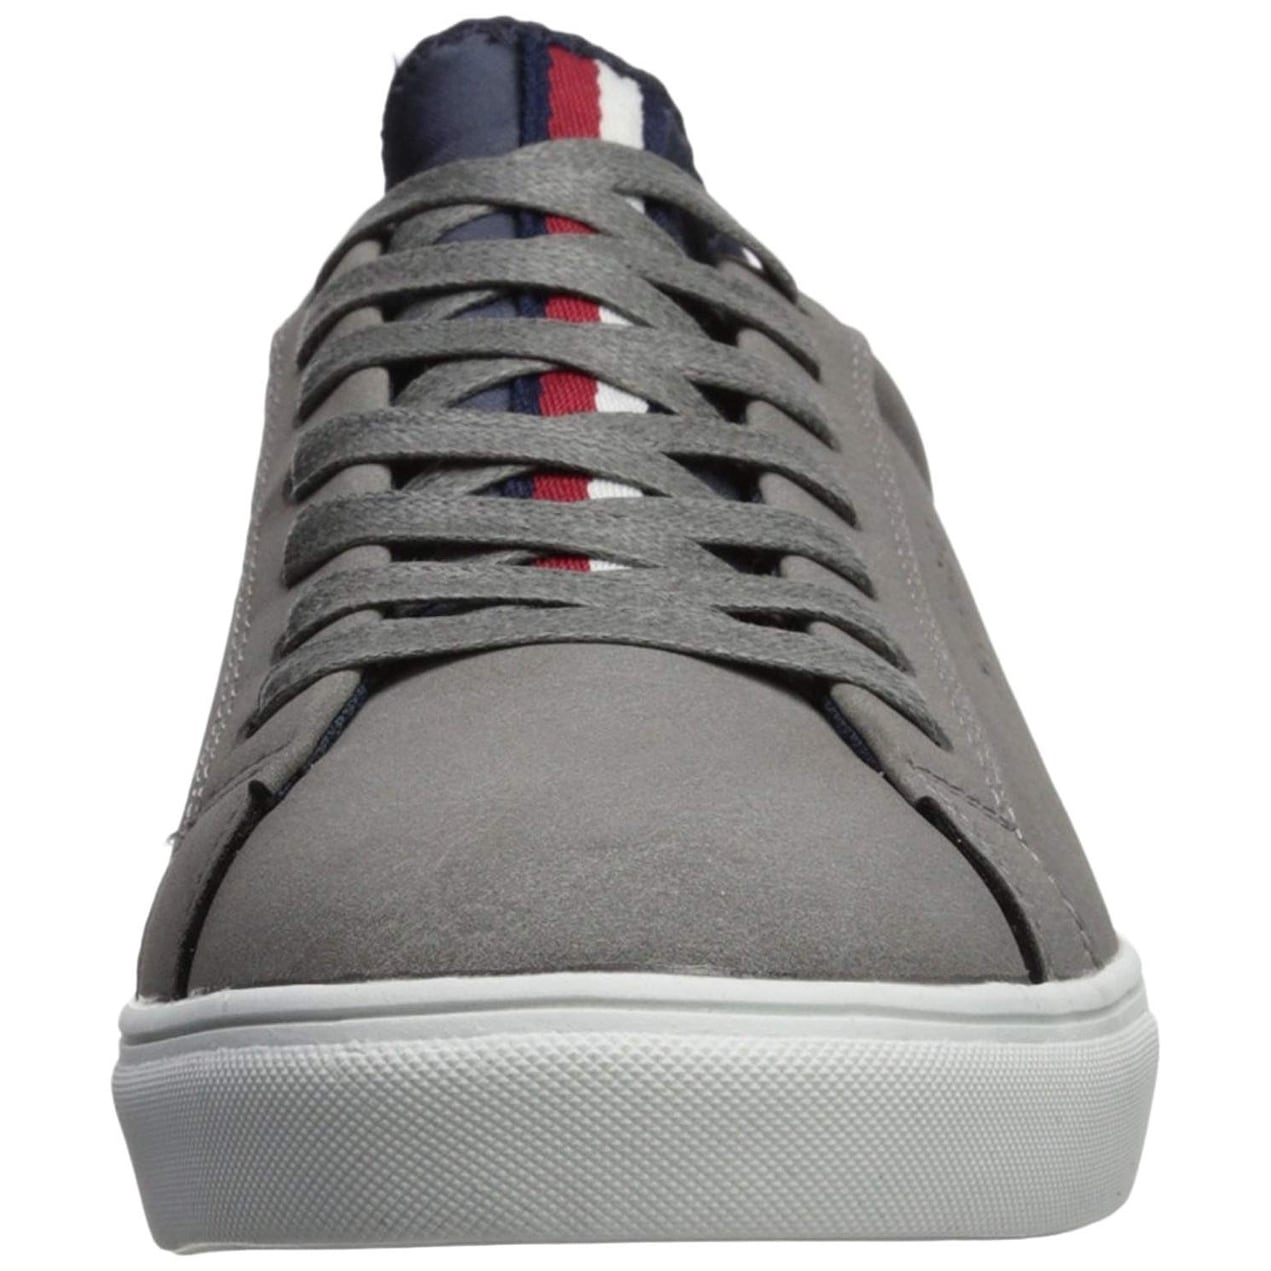 70ca697f3 Shop Tommy Hilfiger Mens McNeil Low Top Lace Up Fashion Sneakers ...